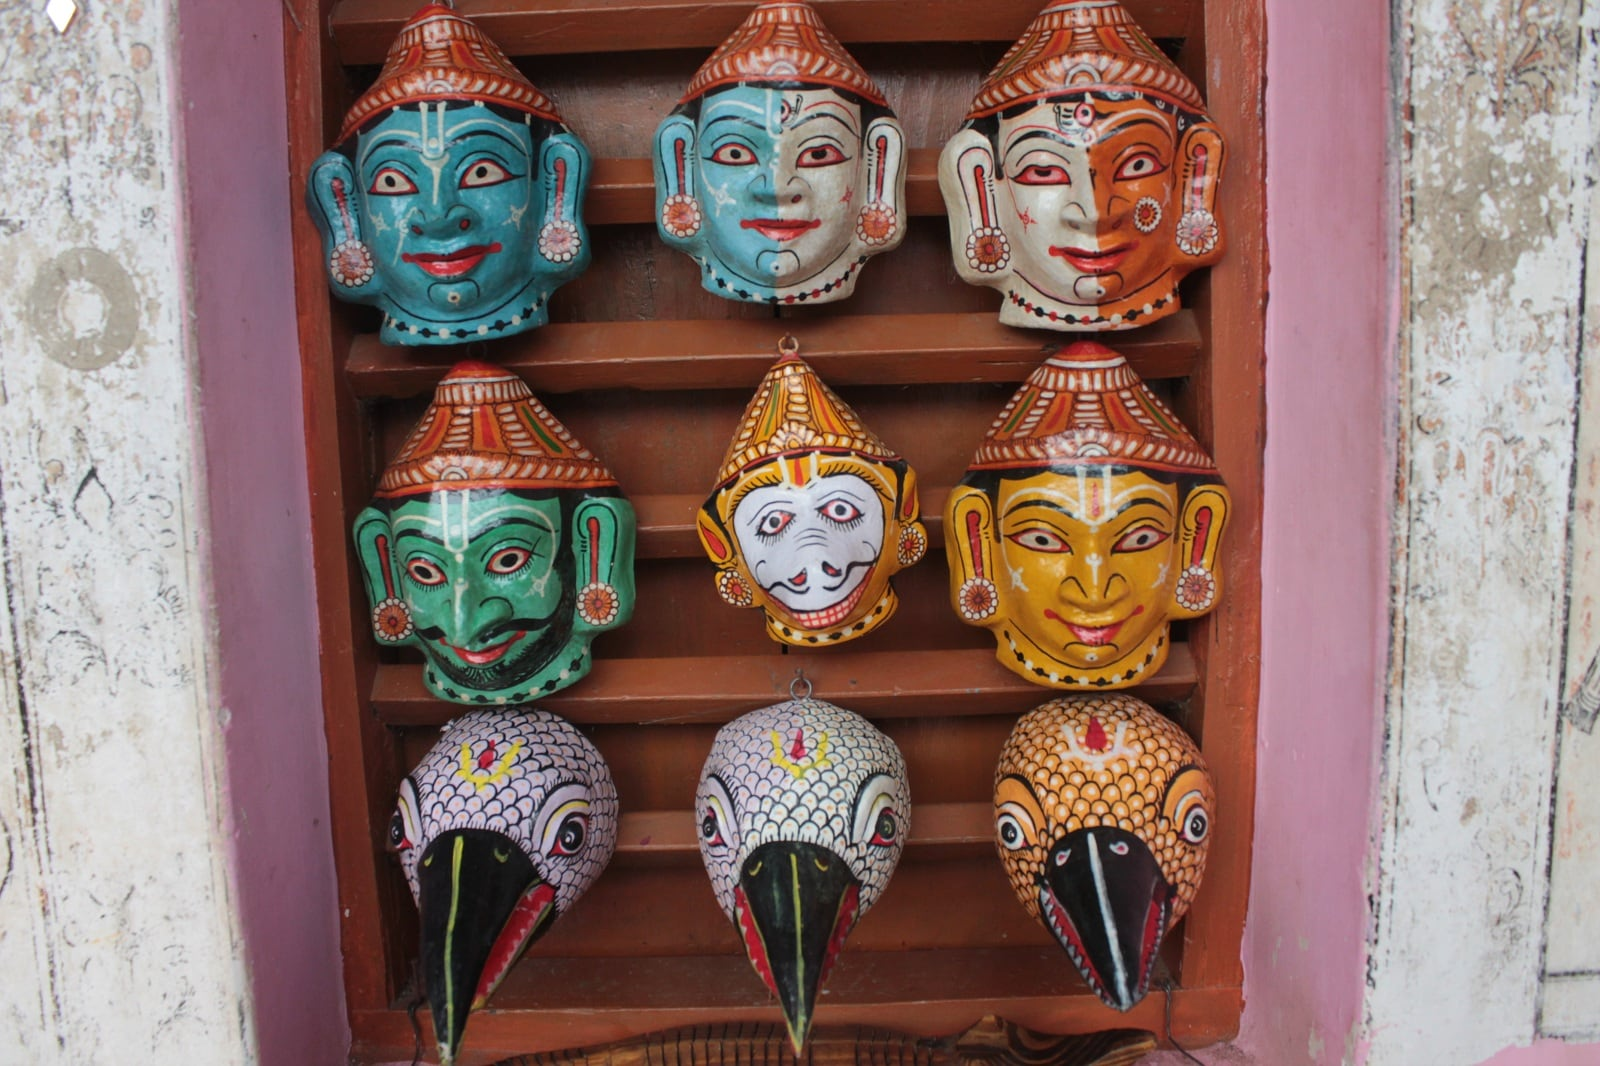 Painted masks on display.